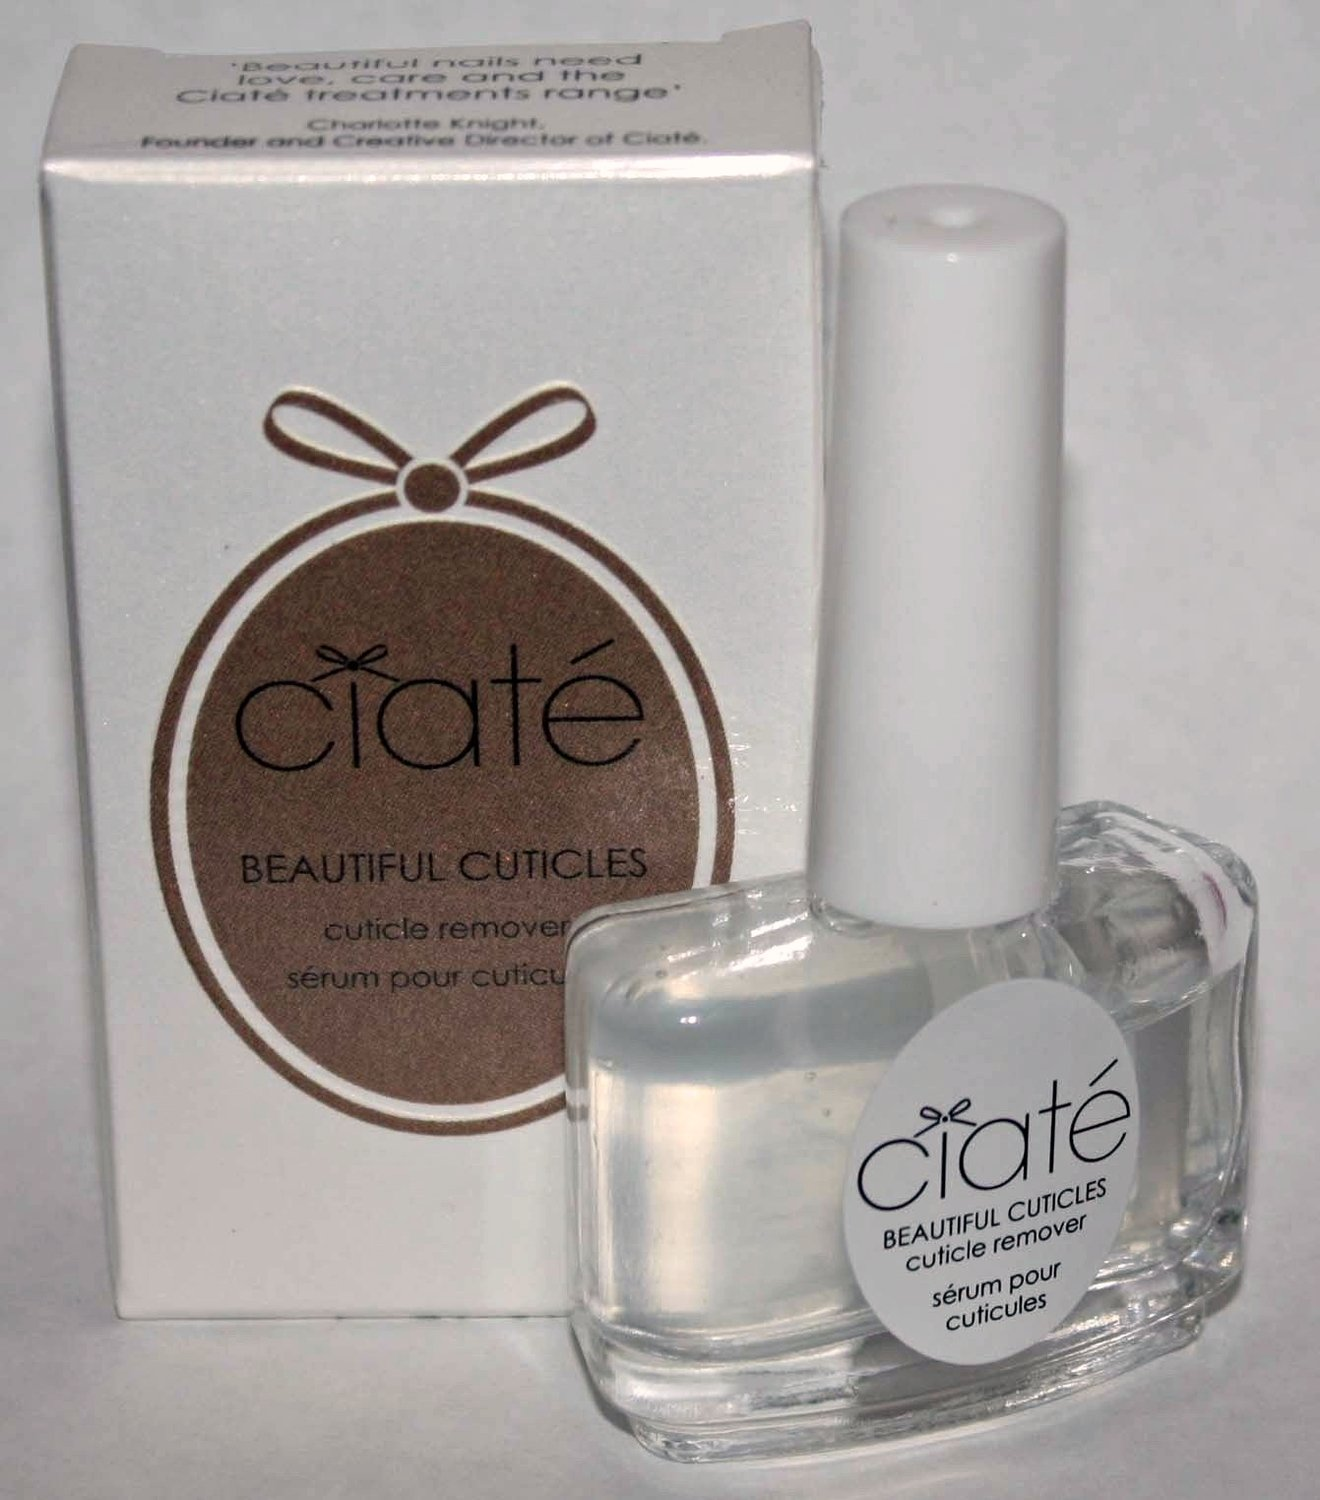 Ciate Nail Beautiful Cuticles Cuticle Remover 0.45 oz